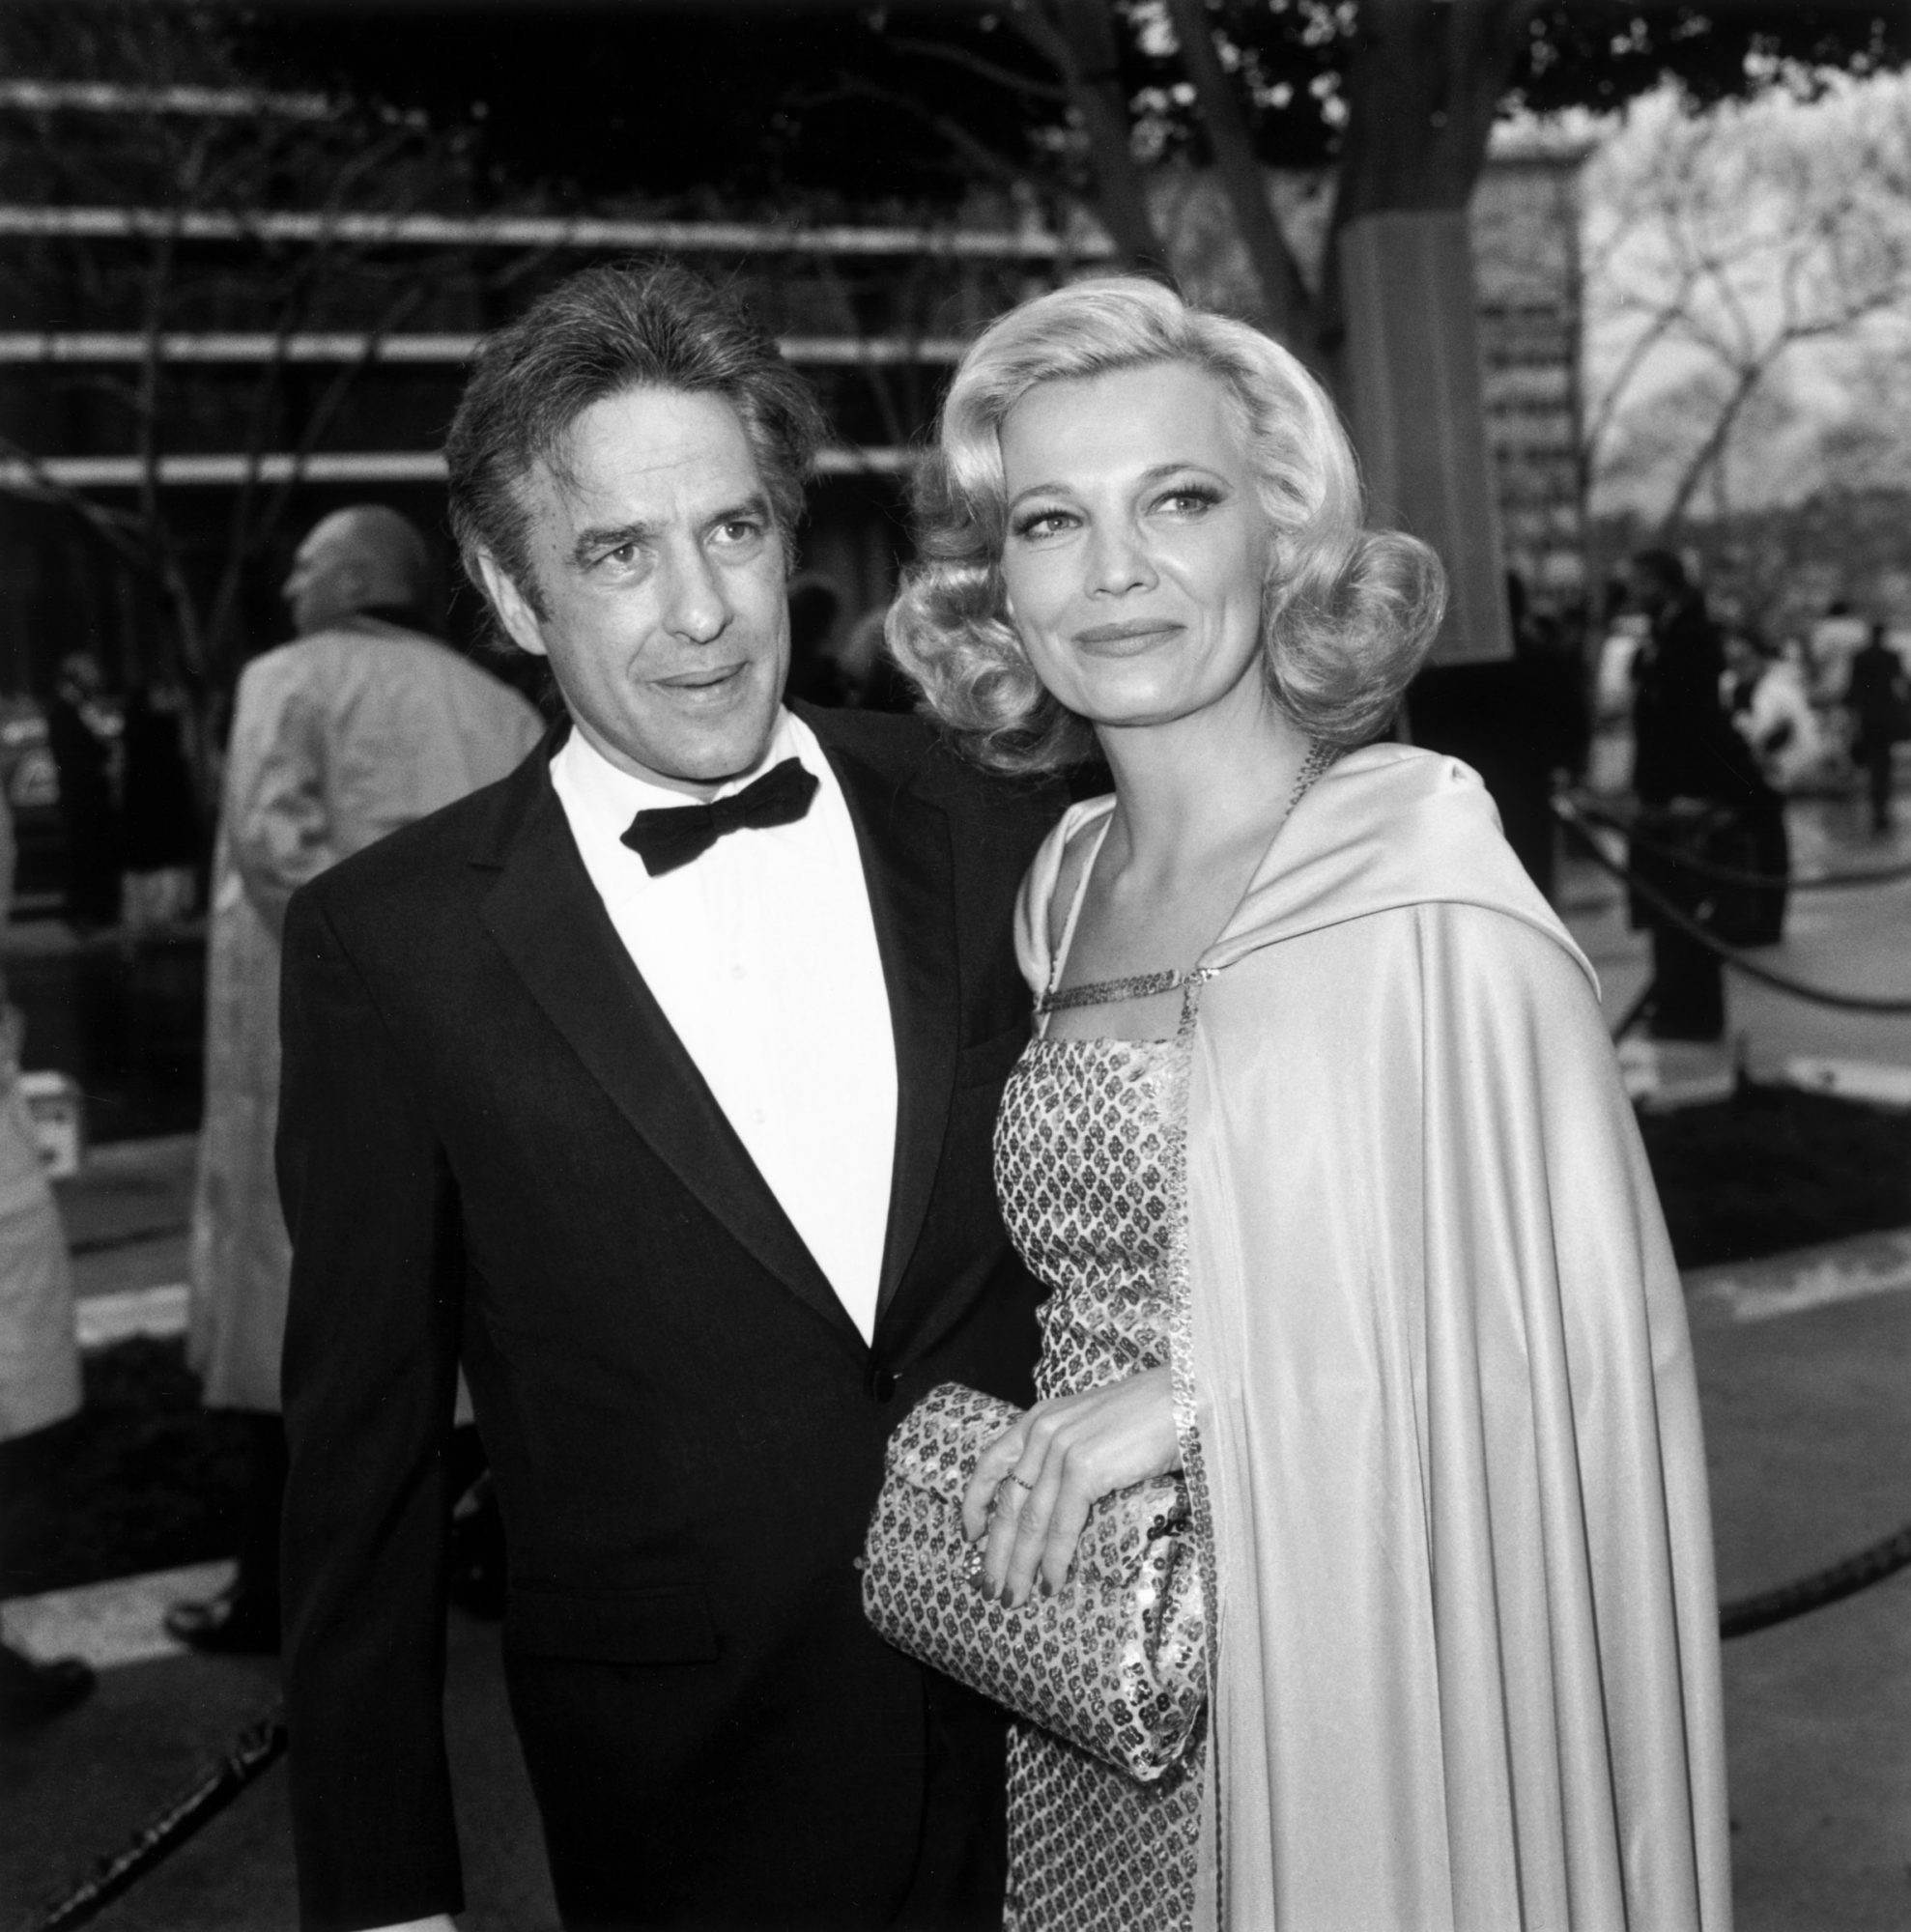 1975: John Cassavetes and Gena Rowlands